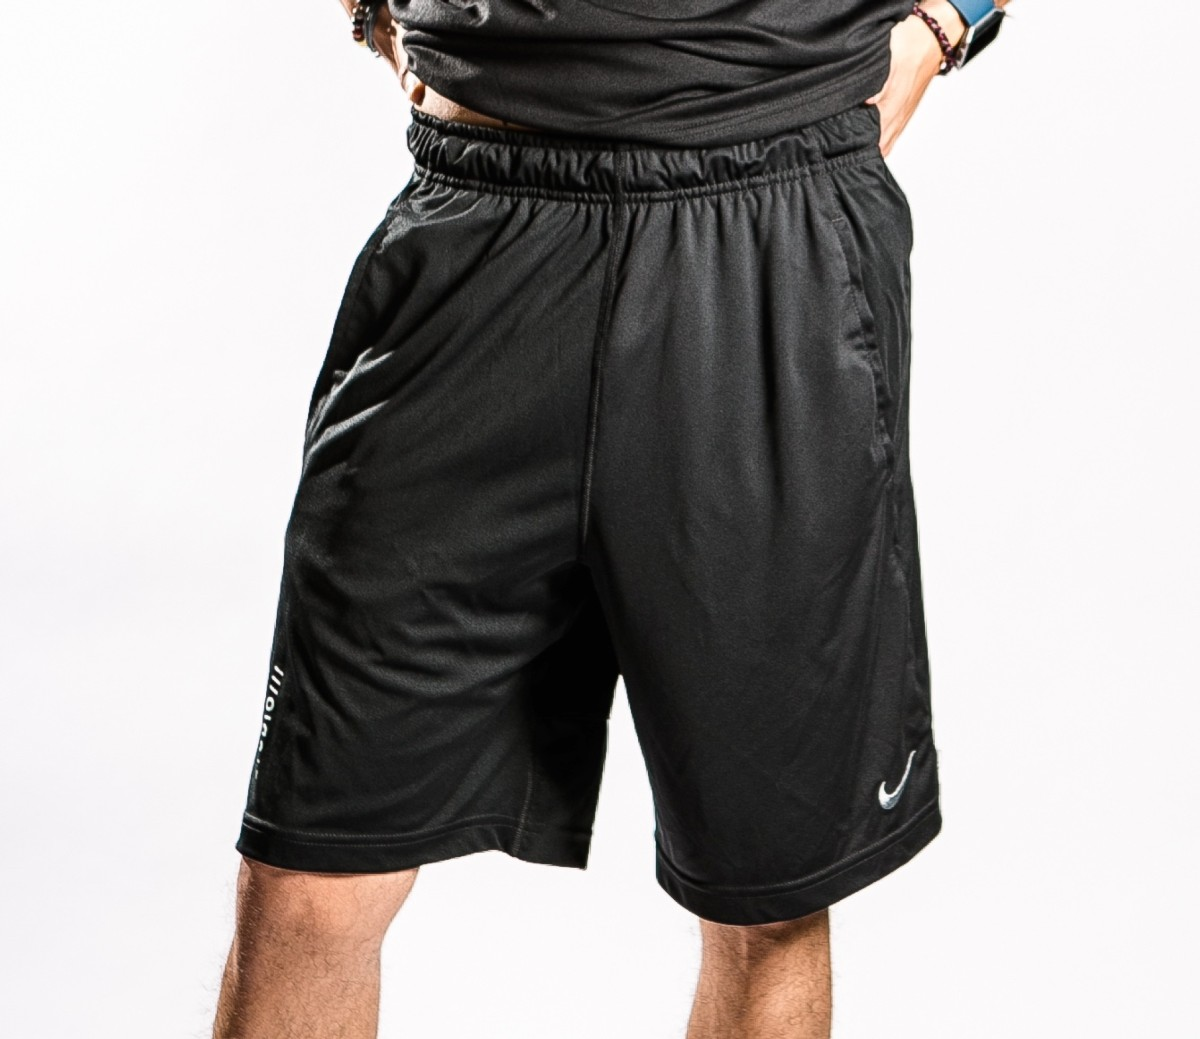 Nike Dri-FIT Shorts (Men's)